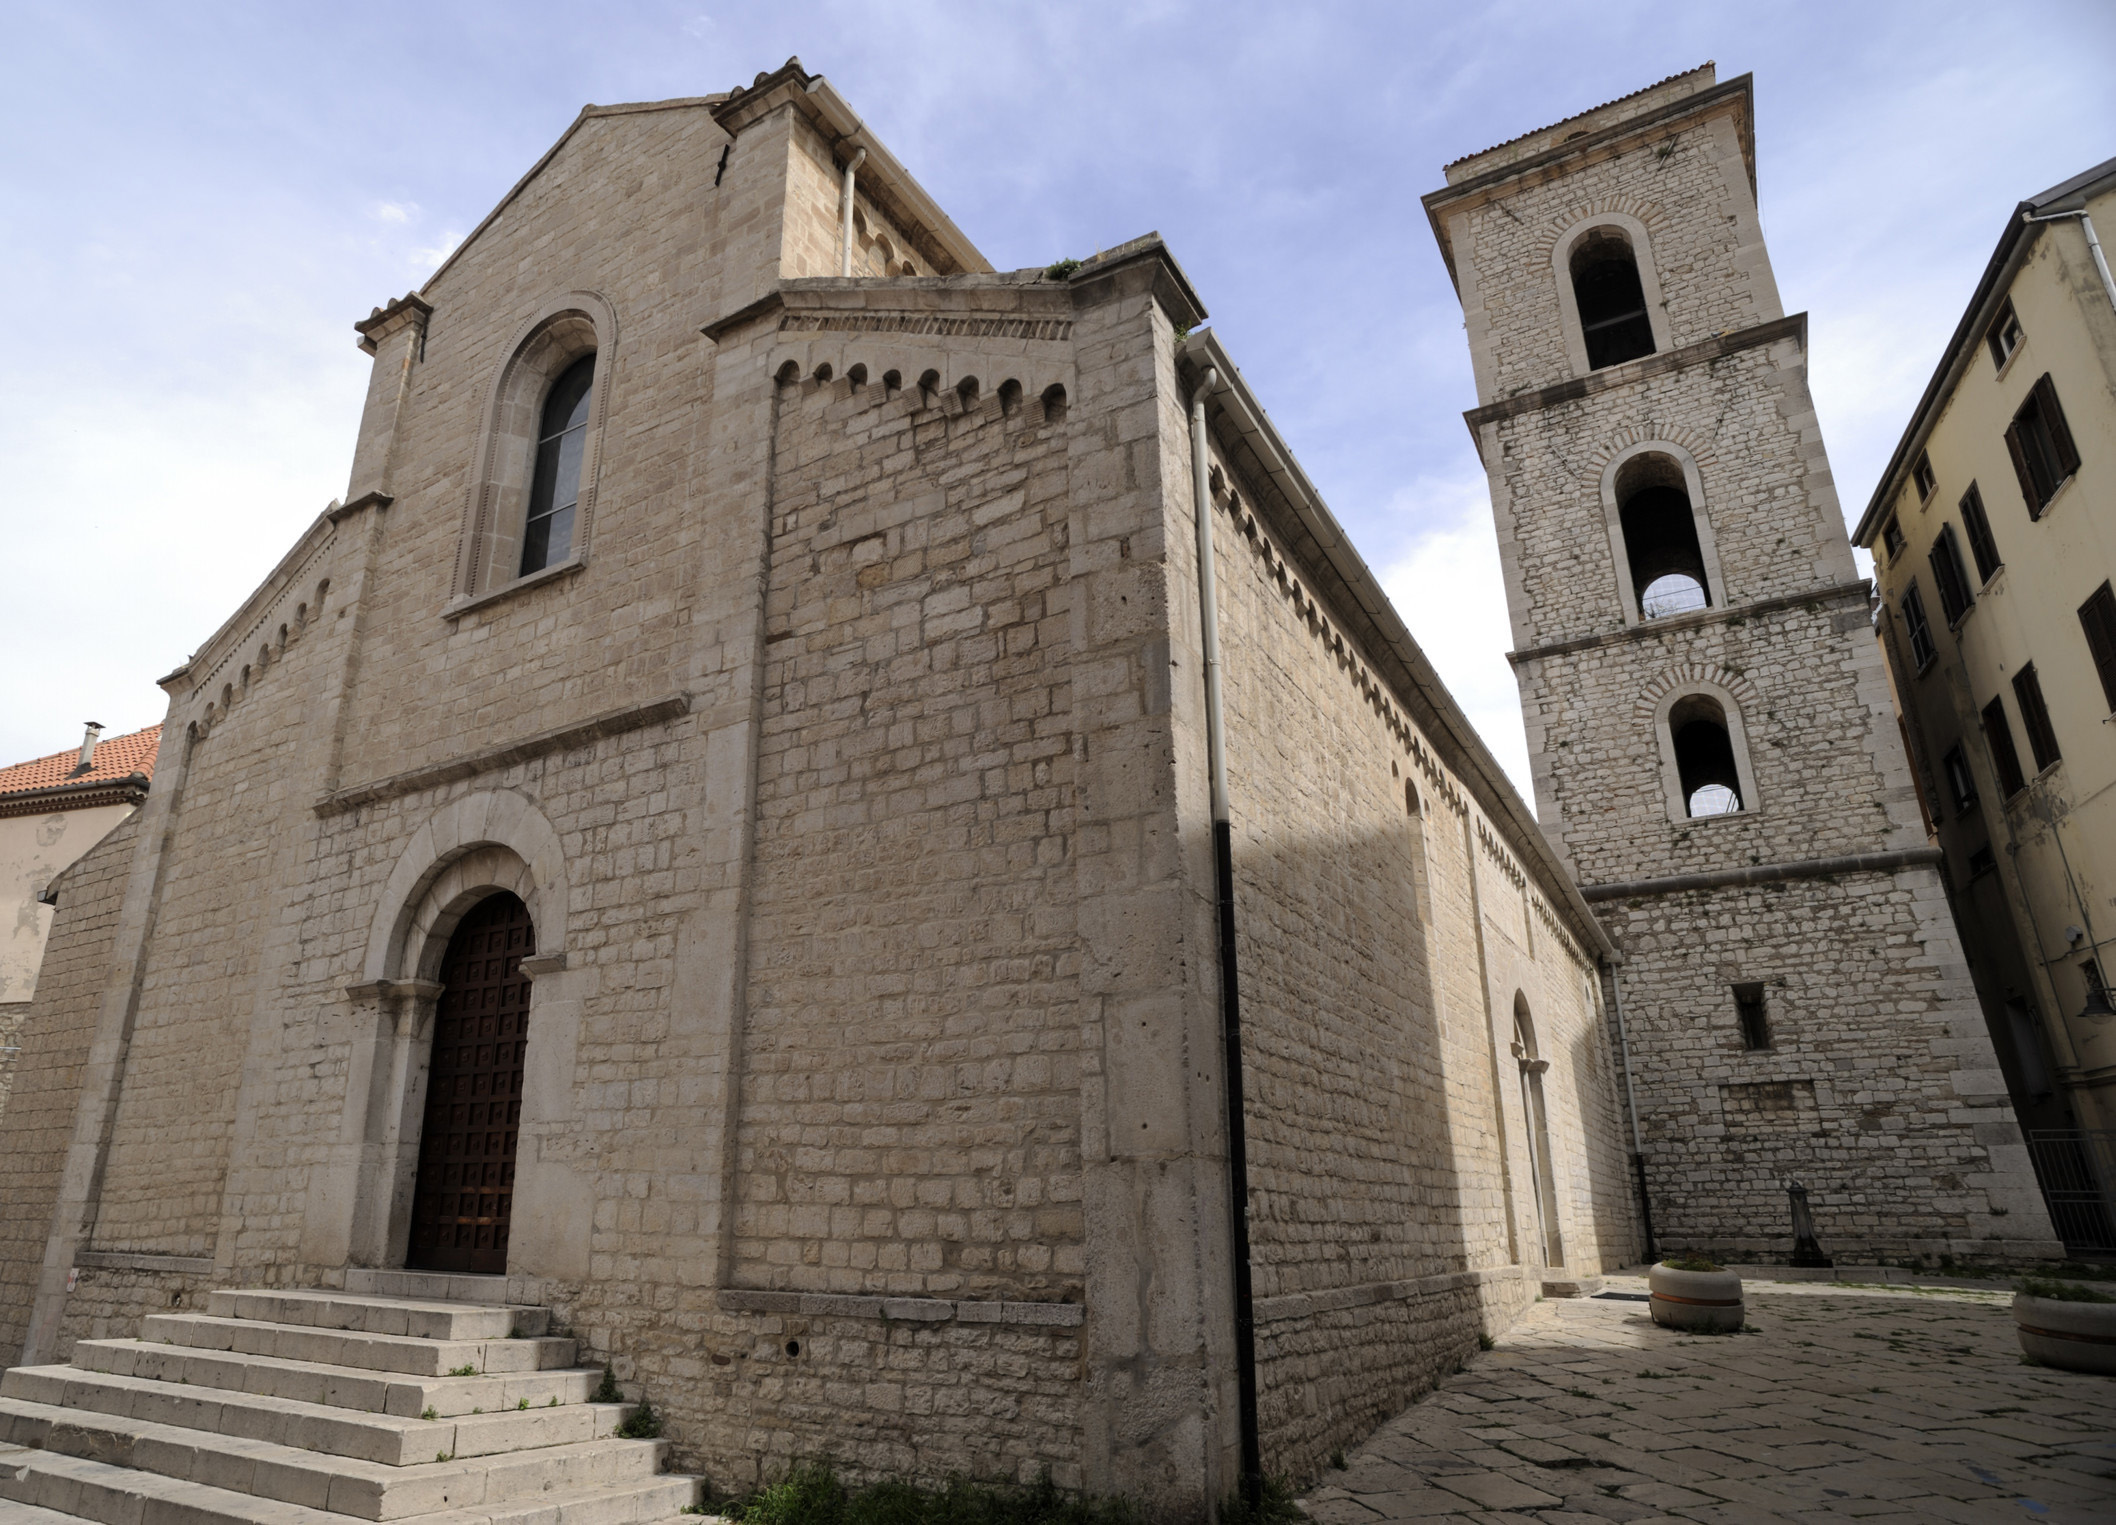 church of san michele arcangelo, potenza, basilicata, italy